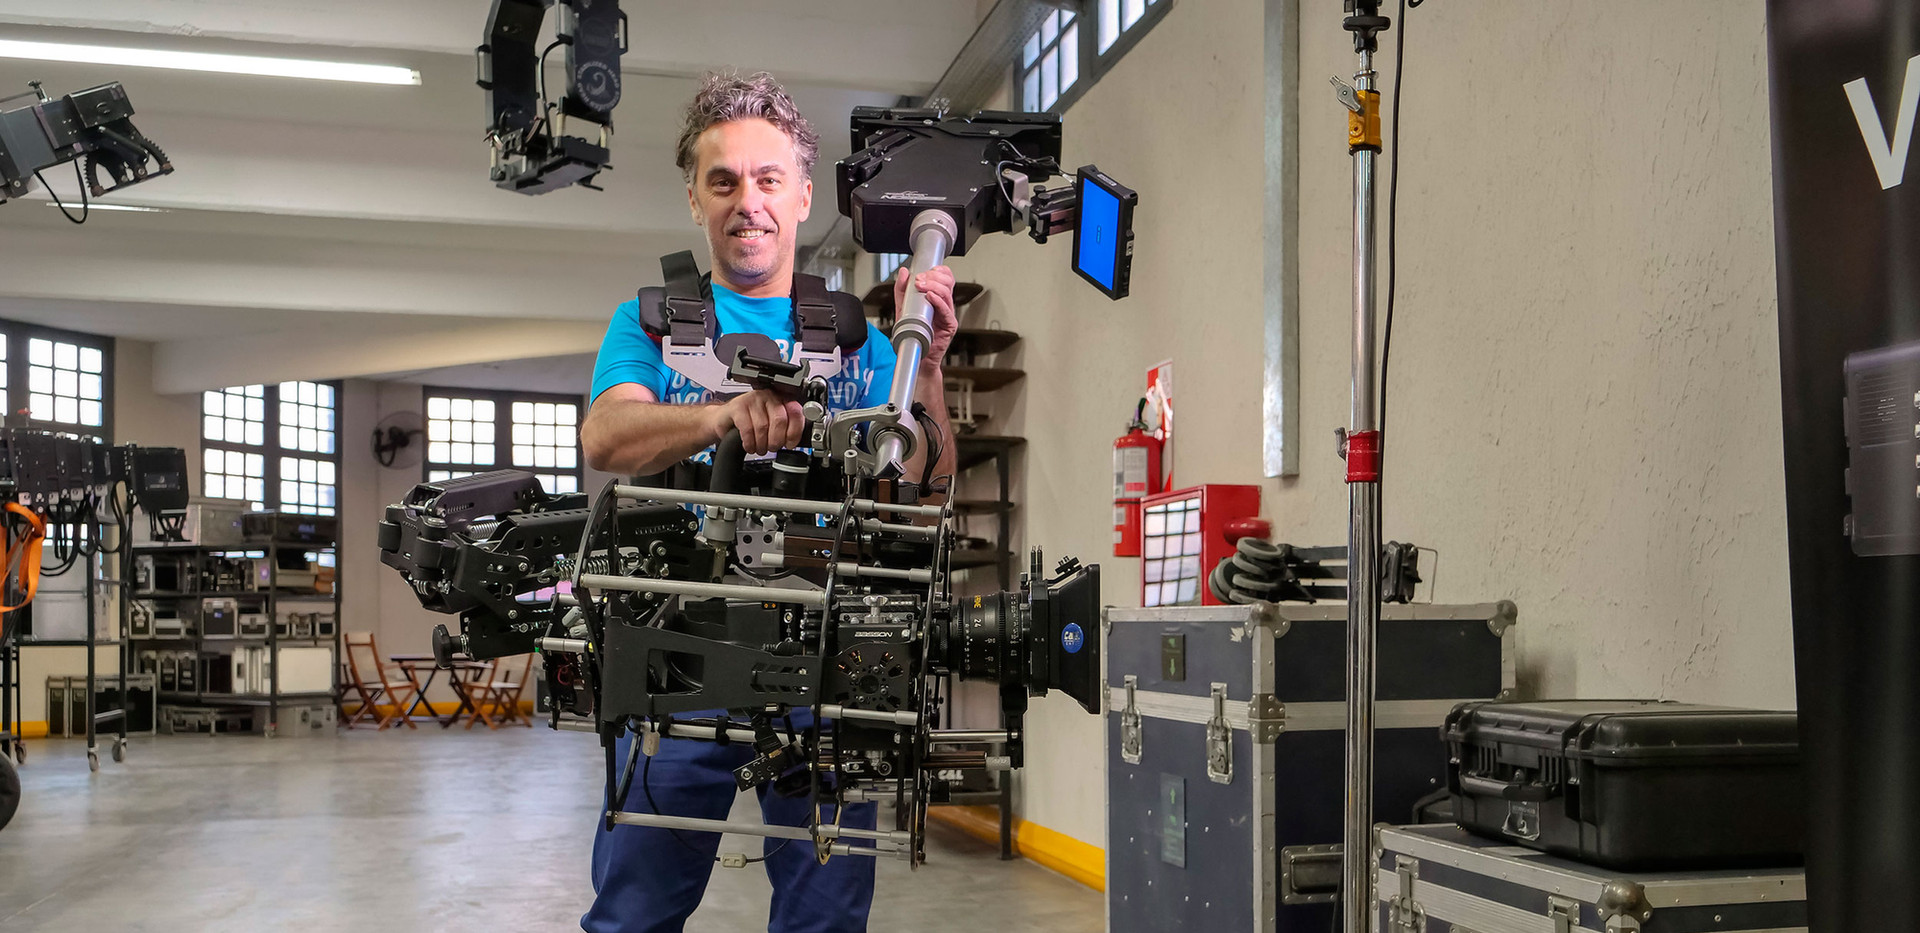 testing the new Red camera Helium 8k on Basson Steady model Endless 3 rotary head hybrid camera stabilizer